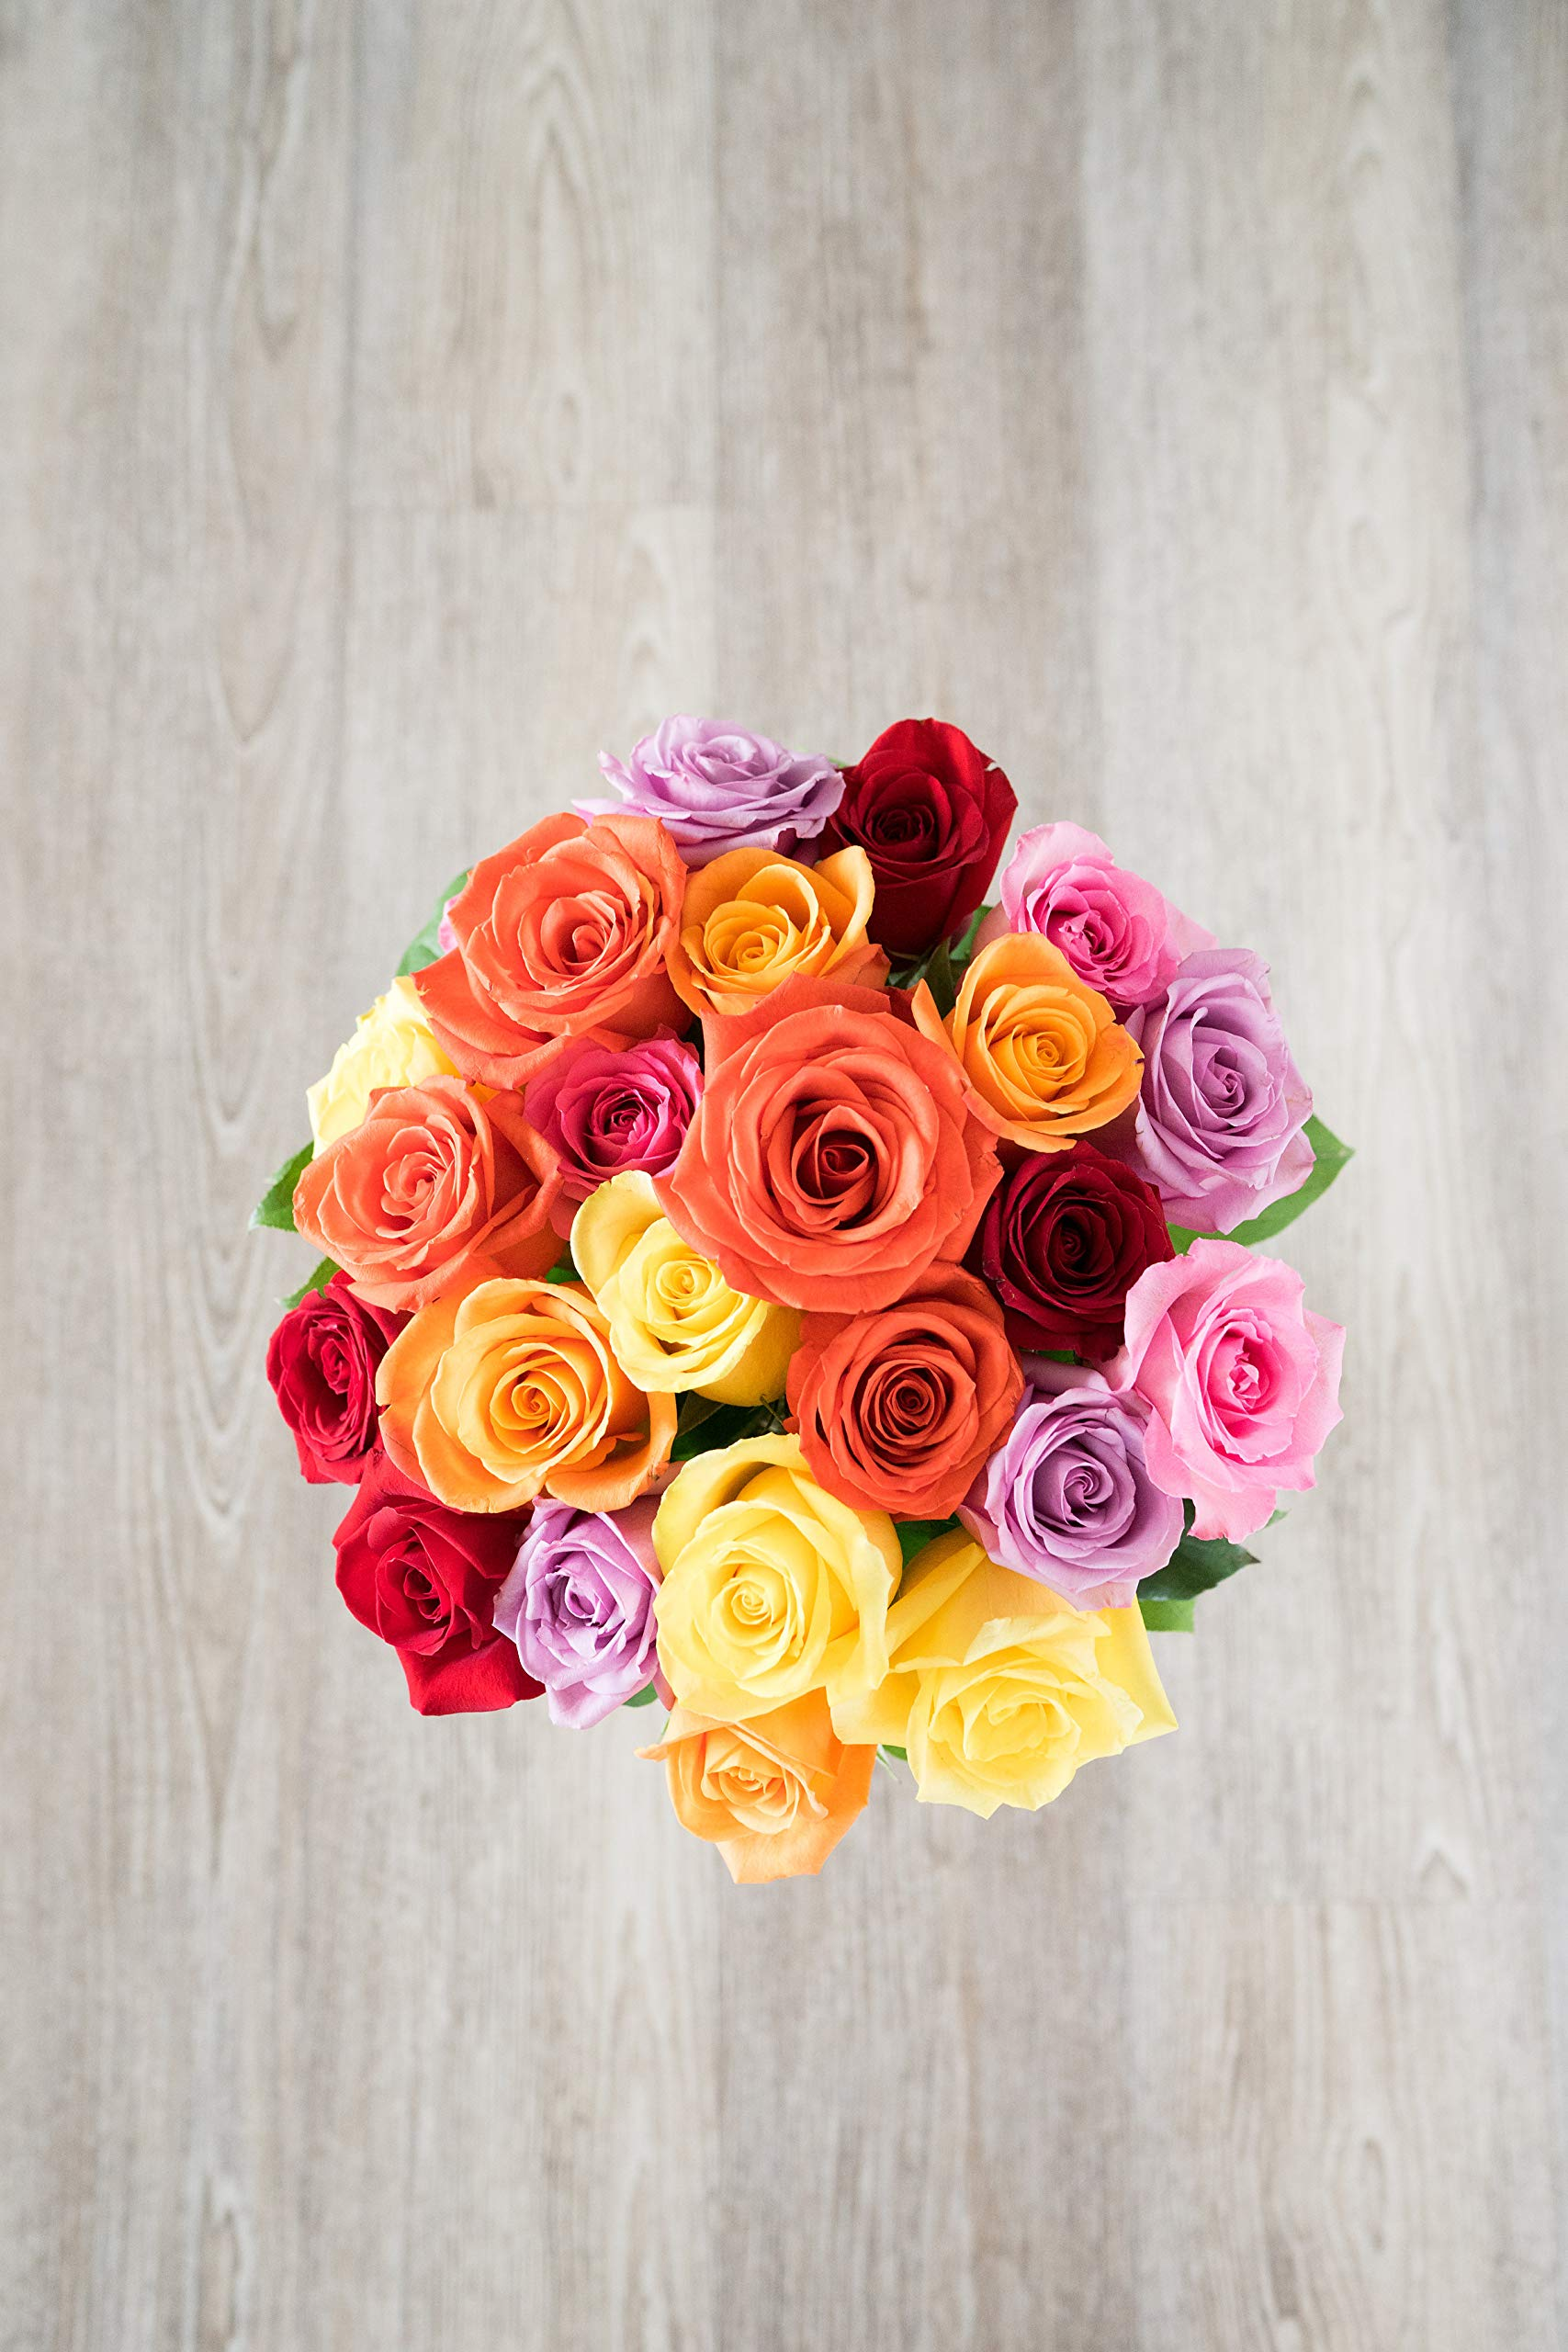 Flowers - Two Dozen Rainbow Roses (Free Vase Included) by From You Flowers